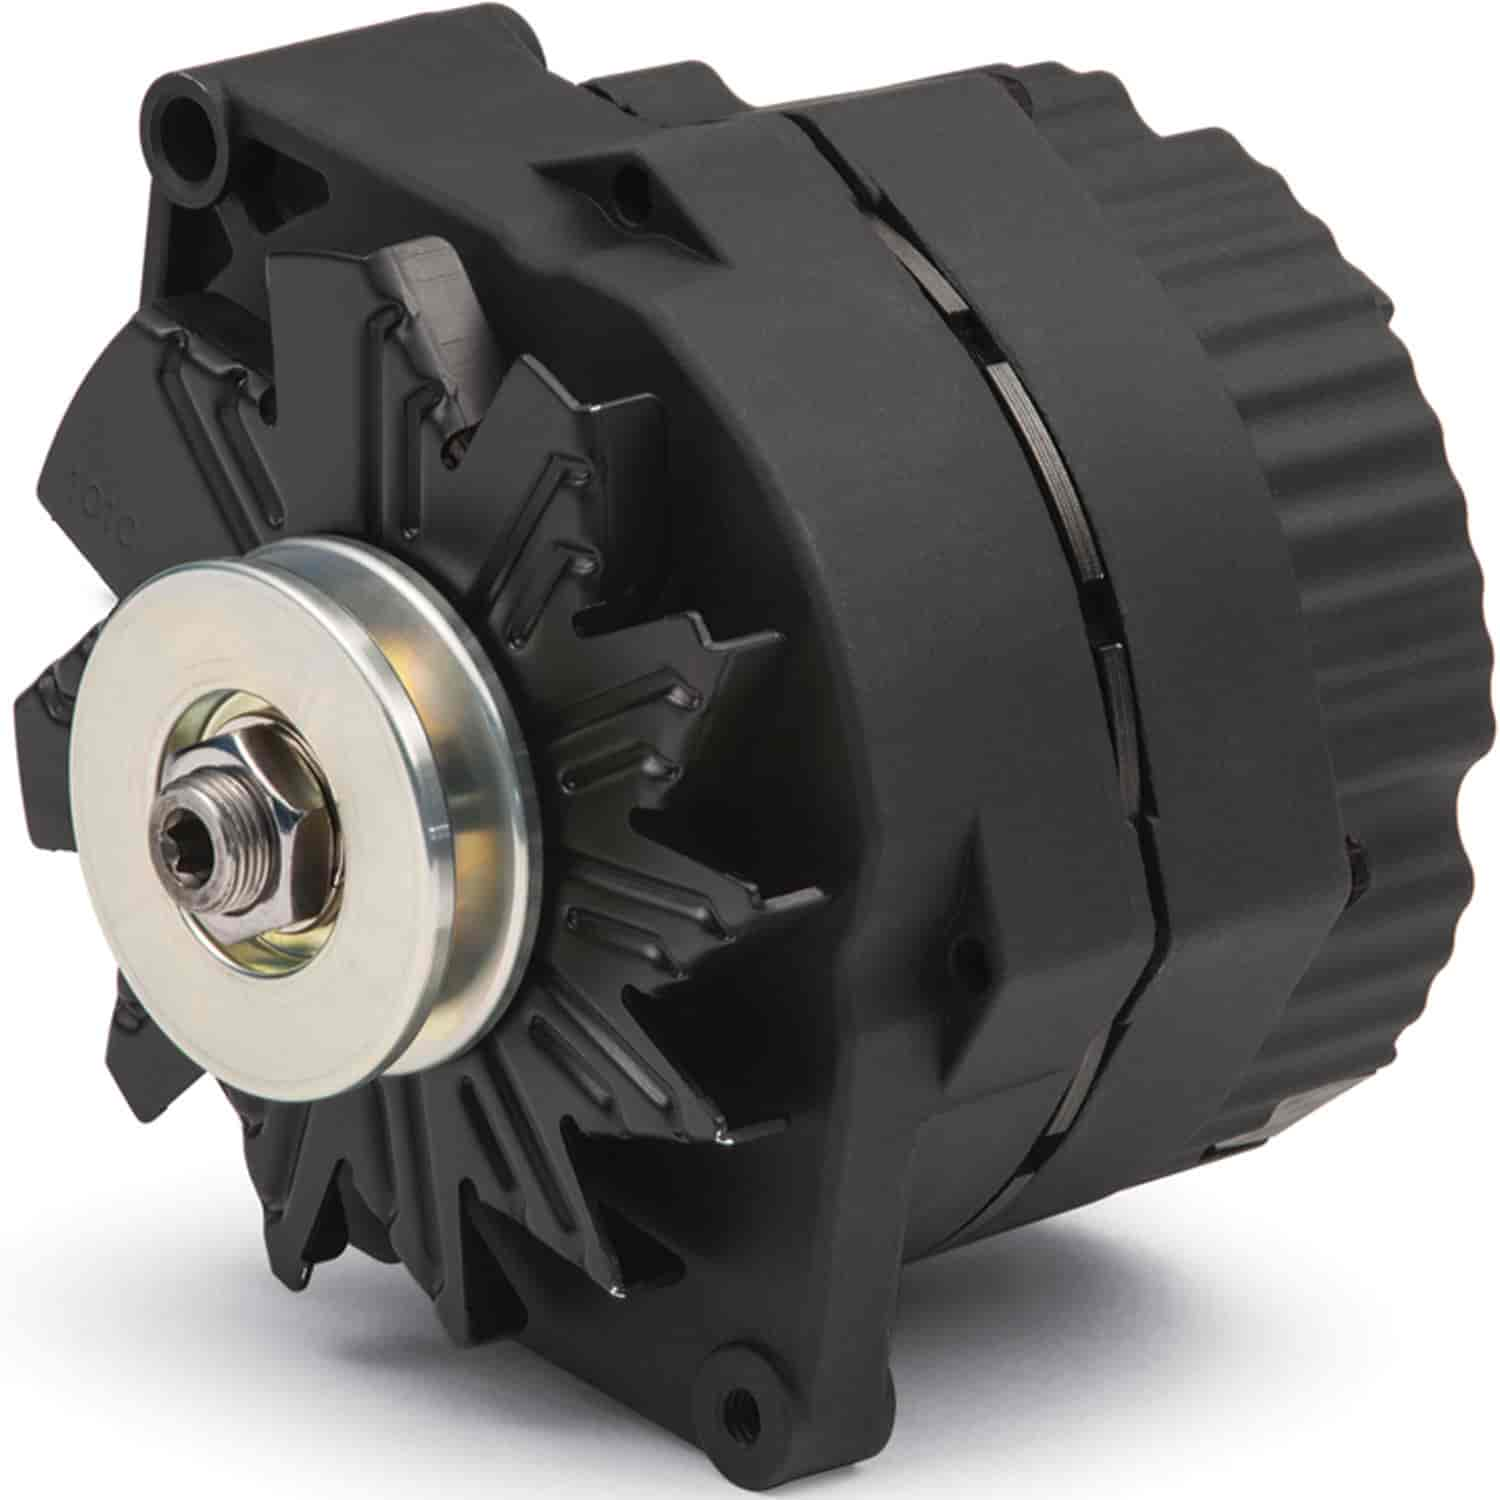 Proform 1-Wire GM Alternator 100-Amp in Black Crinkle Finish